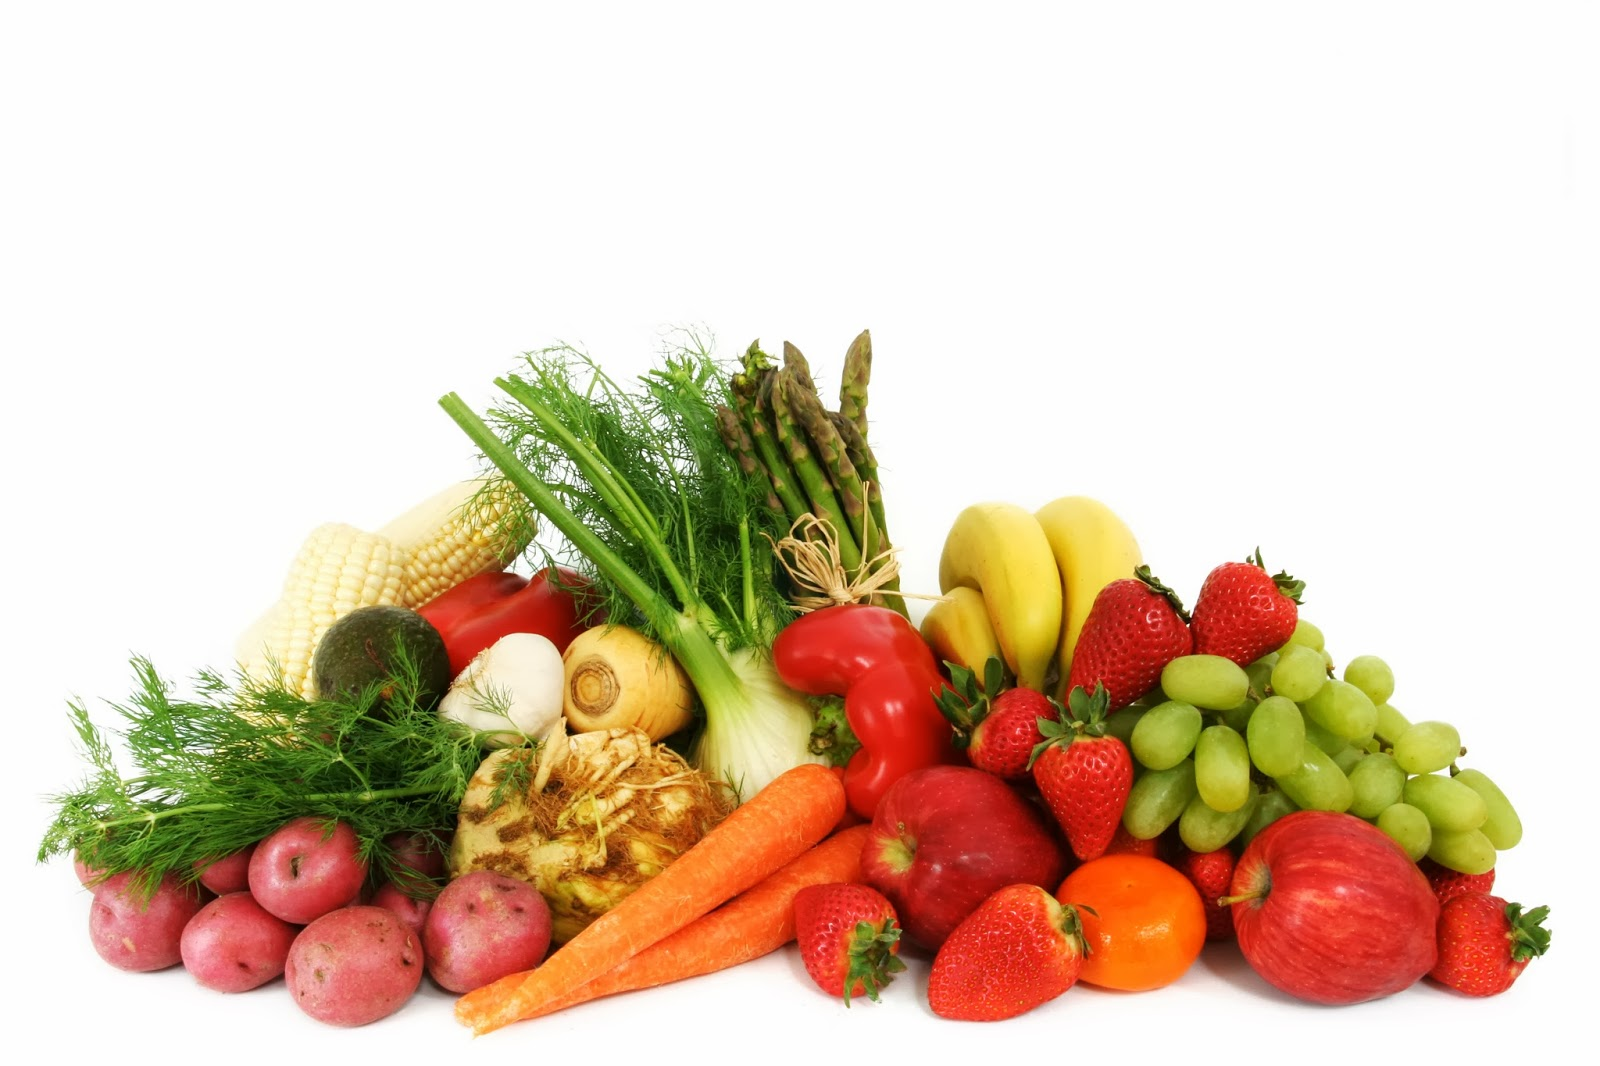 fruits and vegetables hd images fruits and vegetables hd wallpapers 1600x1066